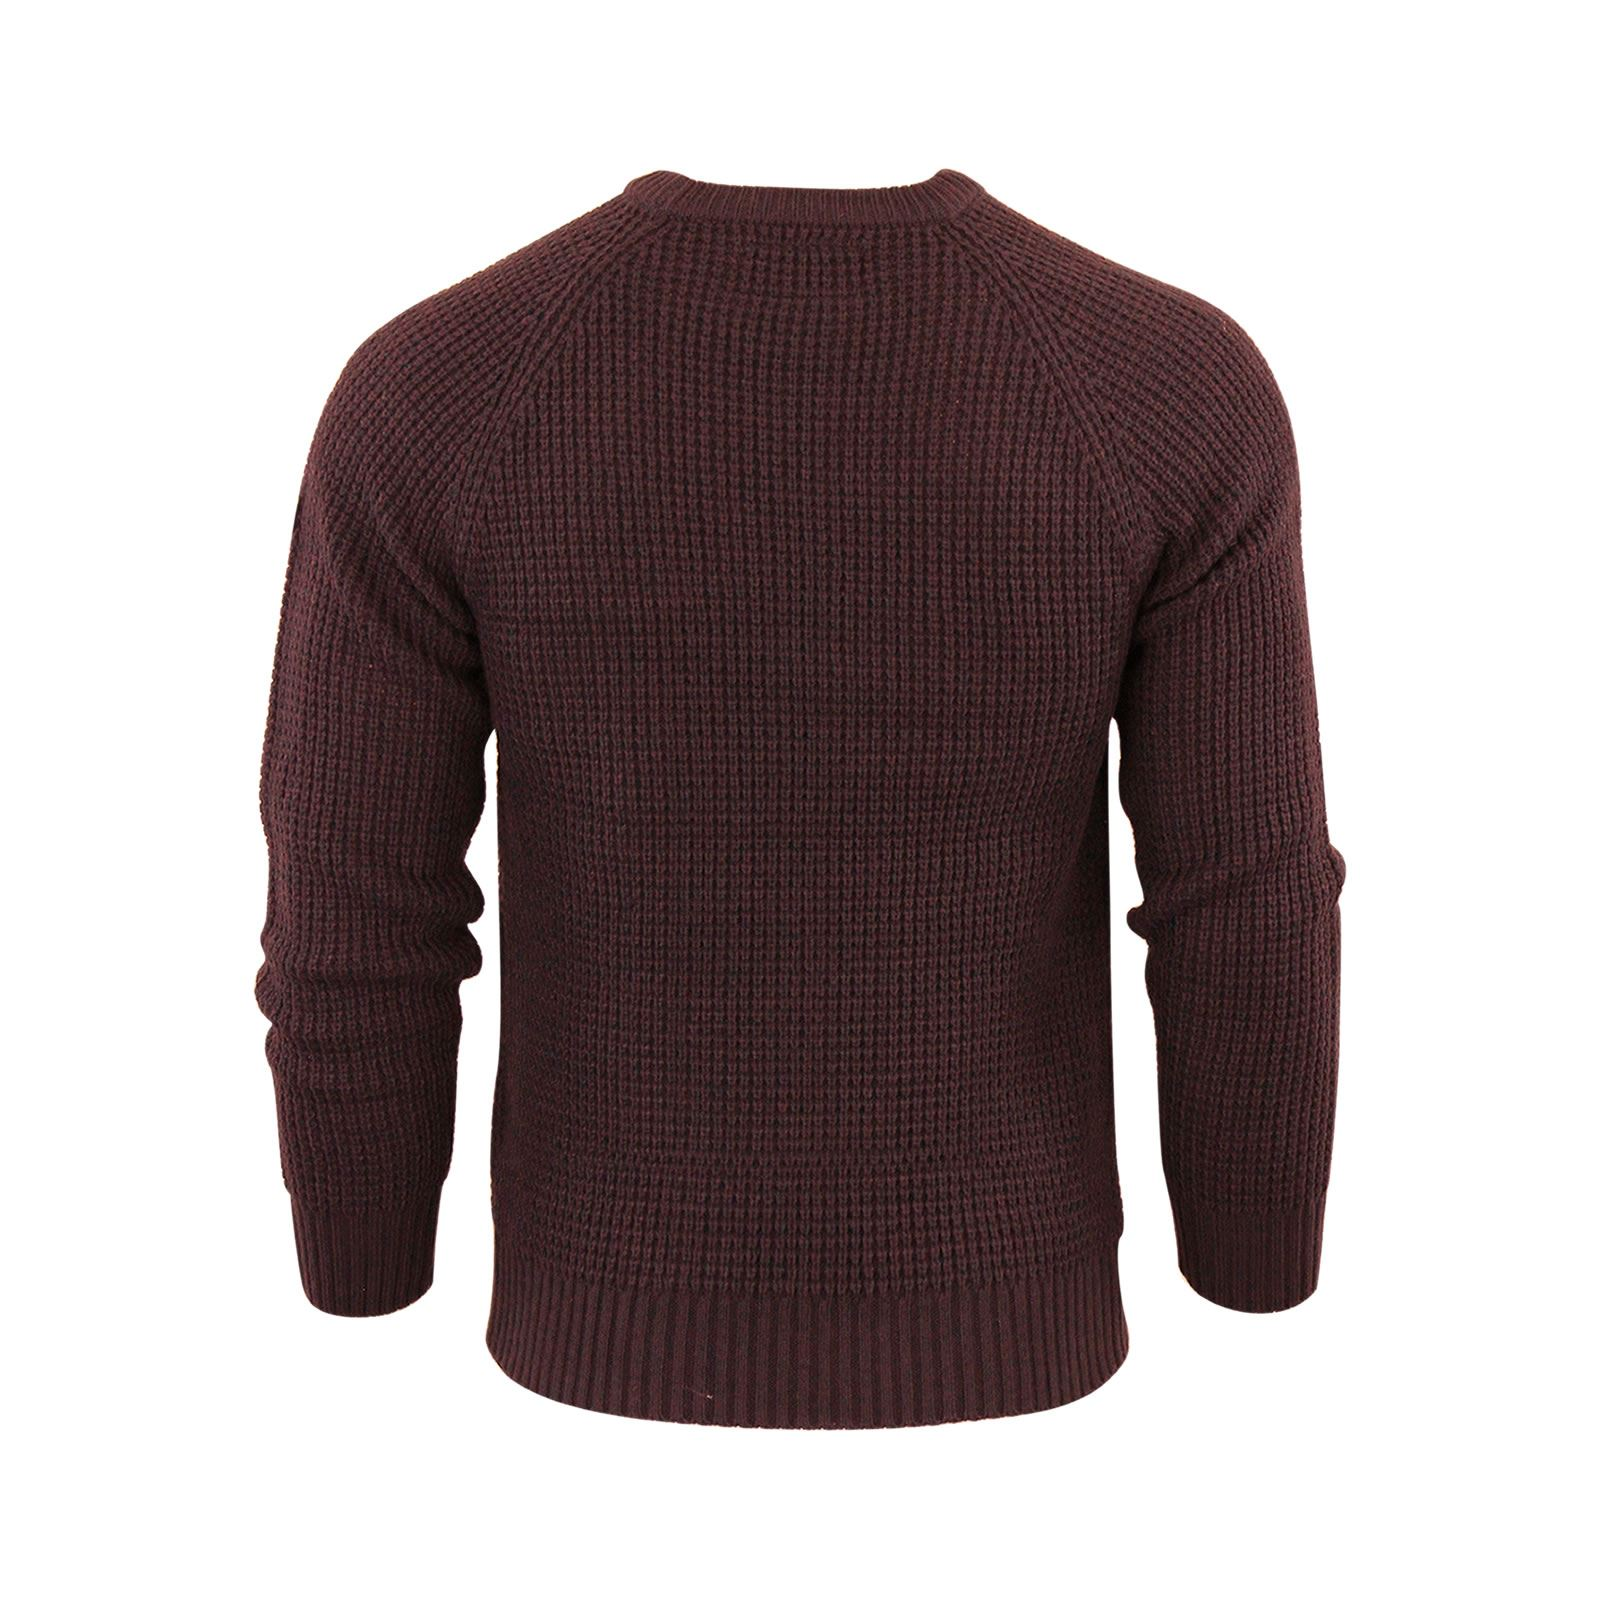 Mens-Jumper-Crosshatch-General-Waffle-Knitted-Crew-Neck-Wool-Mix-Sweater thumbnail 3